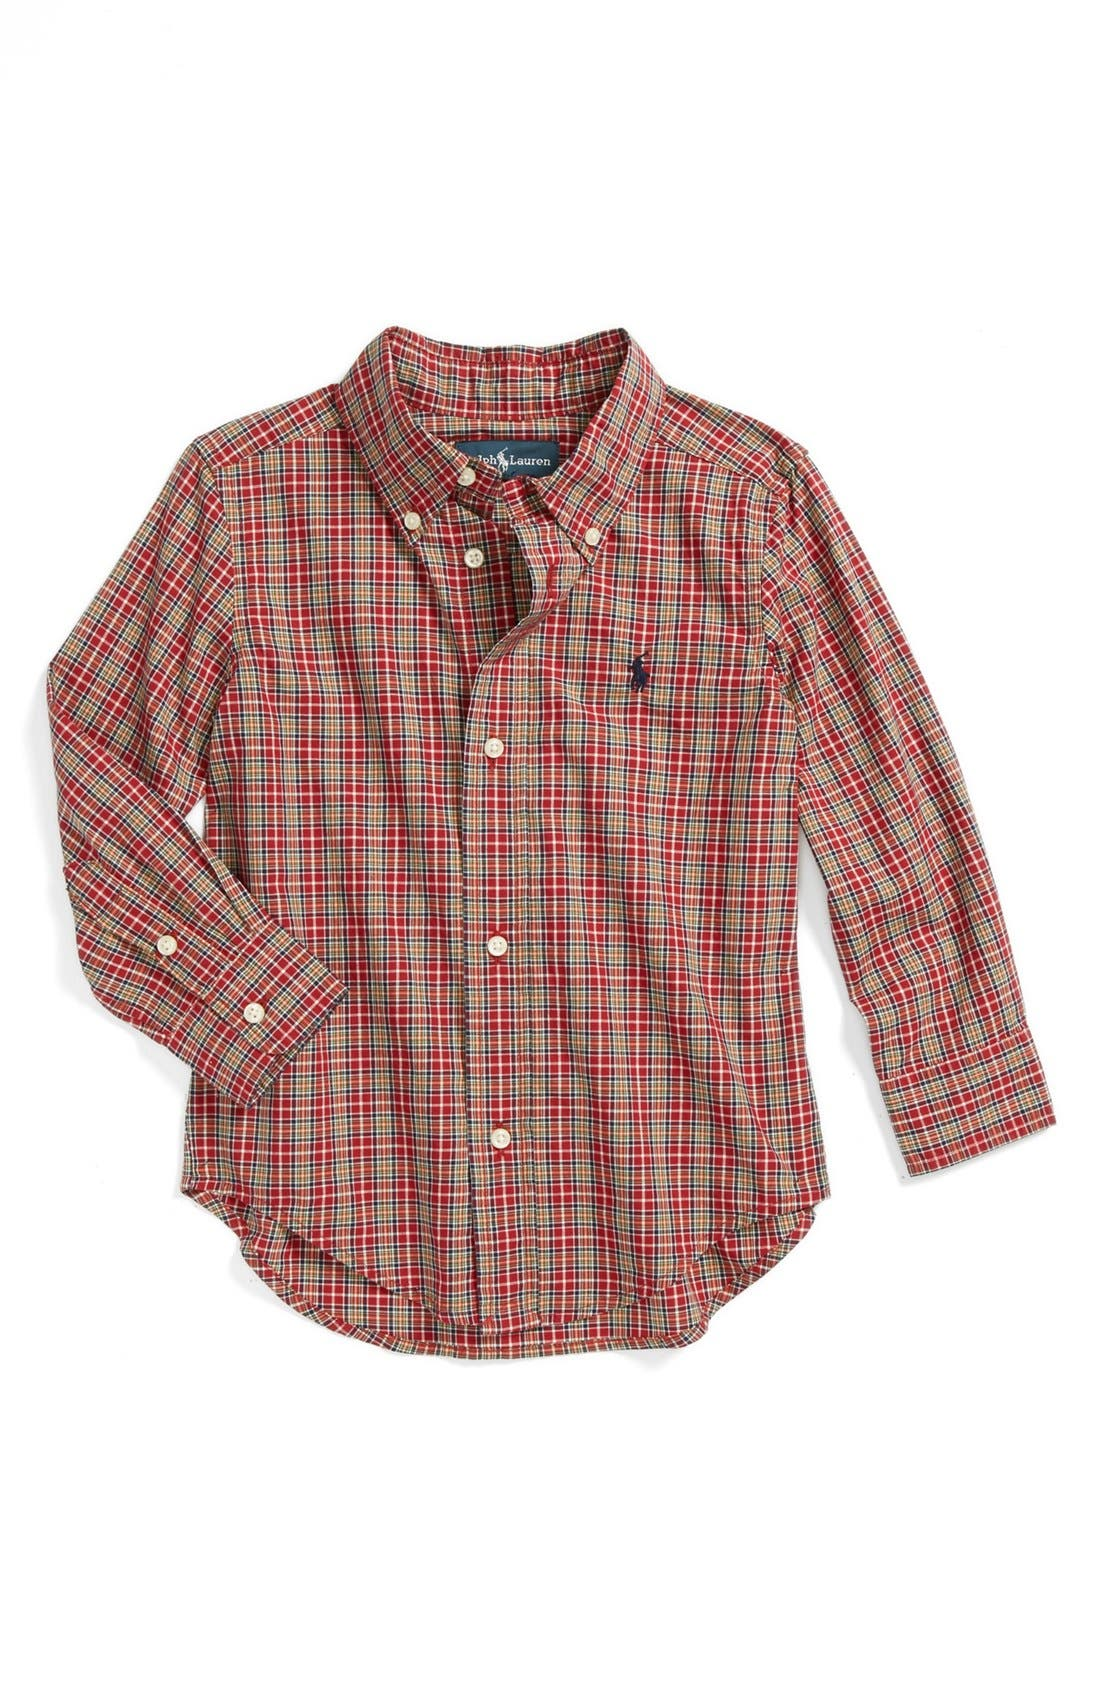 Main Image - Ralph Lauren 'Blake' Sport Shirt (Toddler Boys)